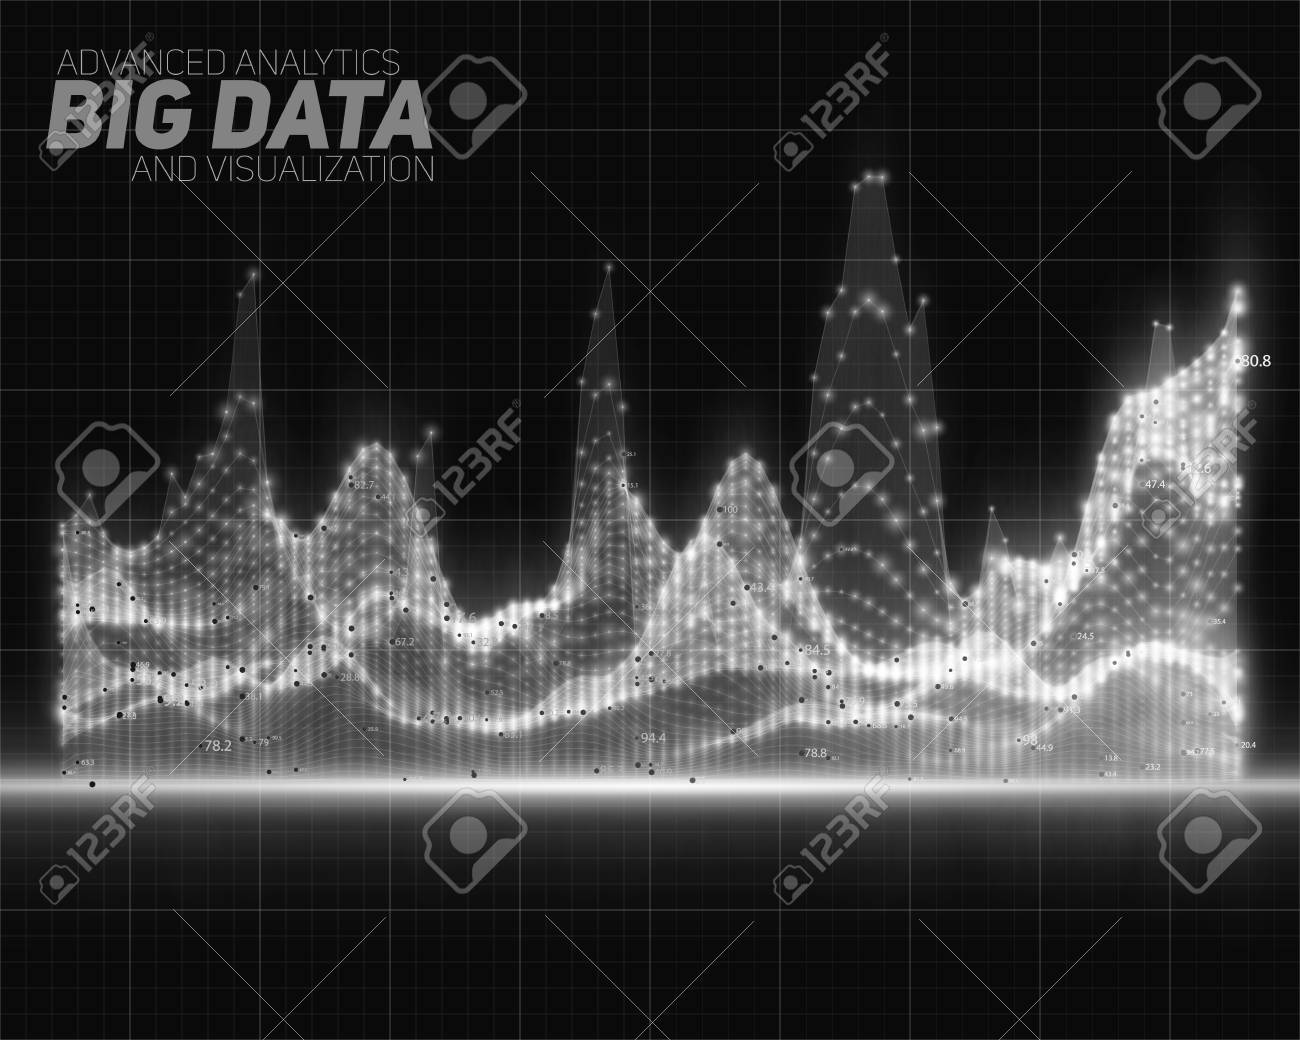 Vector Abstract Grayscale Big Data Visualization Futuristic Royalty Free Cliparts Vectors And Stock Illustration Image 76182209